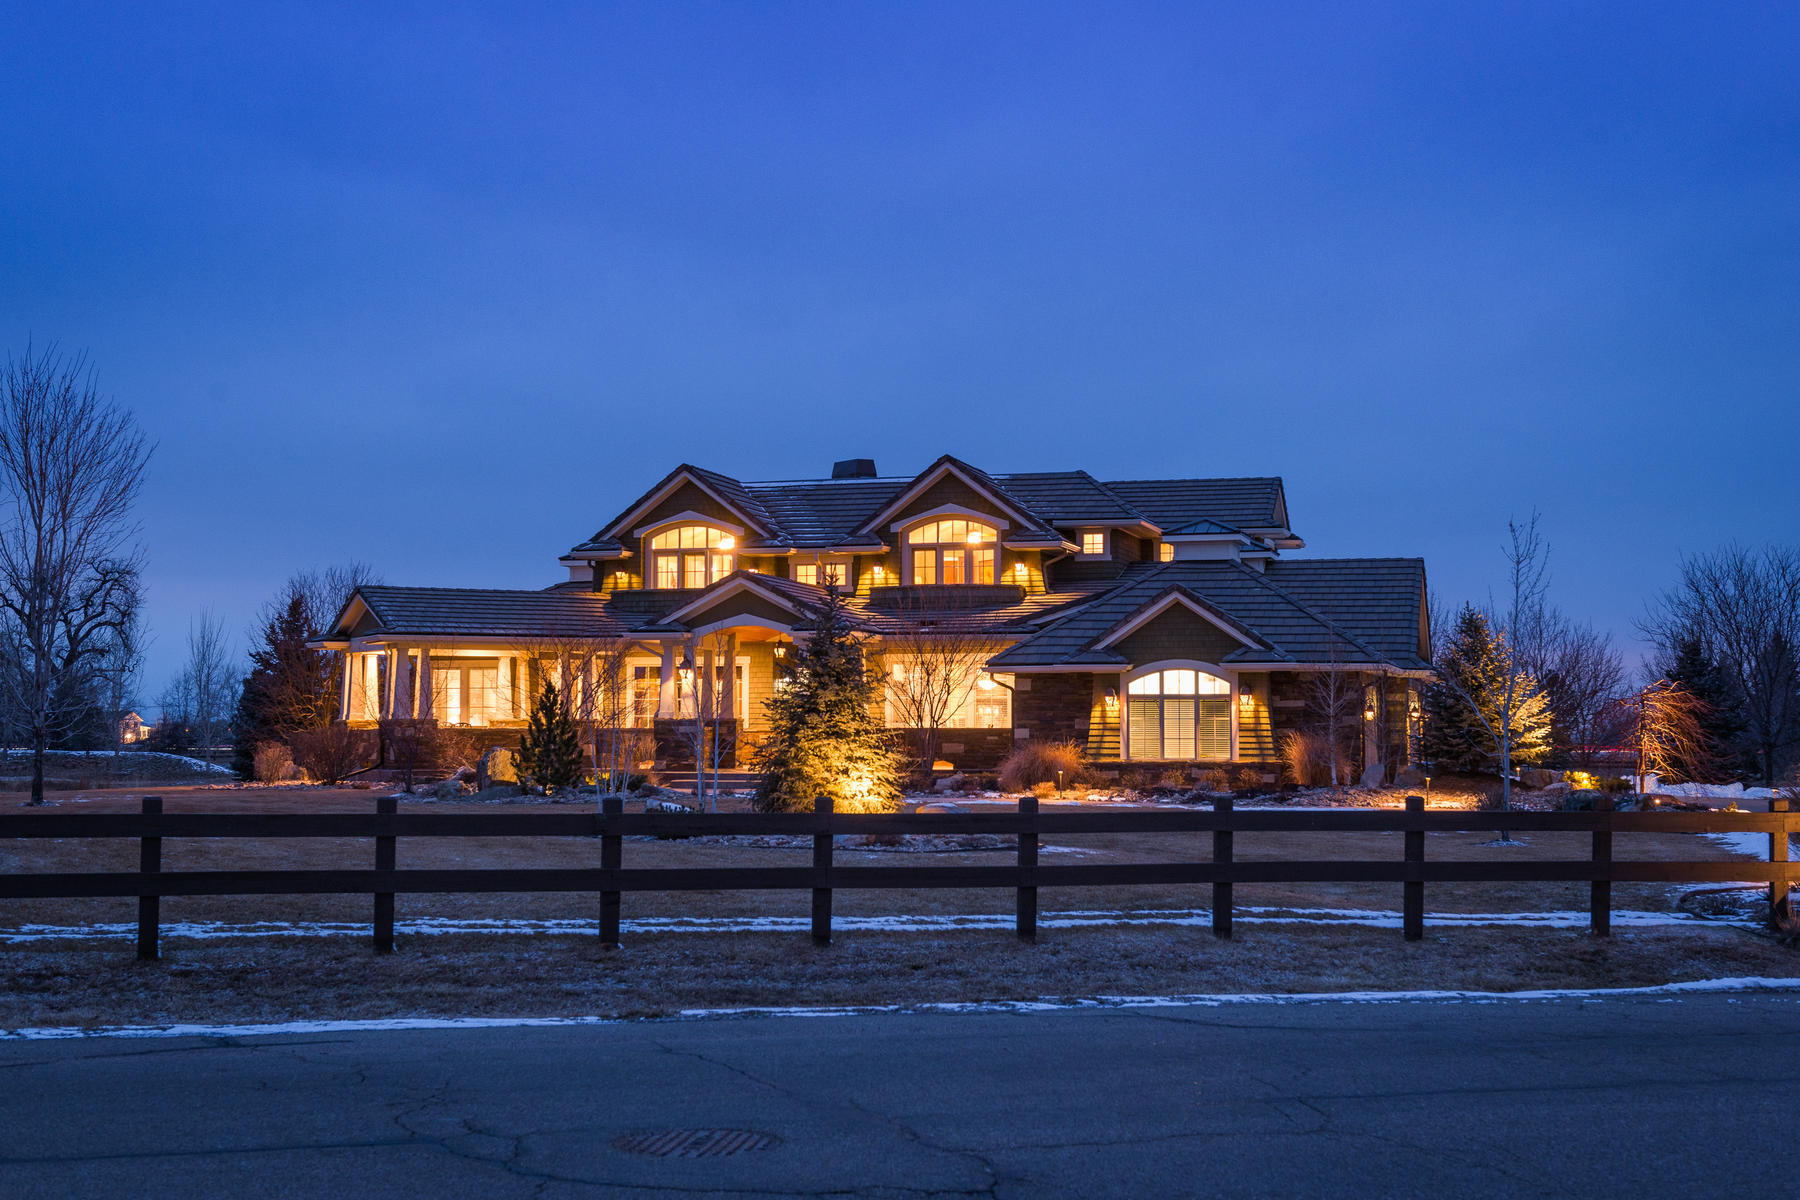 Single Family Home for Sale at Incredible Views In White Hawk Ranch 1459 White Hawk Ranch Dr., Boulder, Colorado, 80303 United States